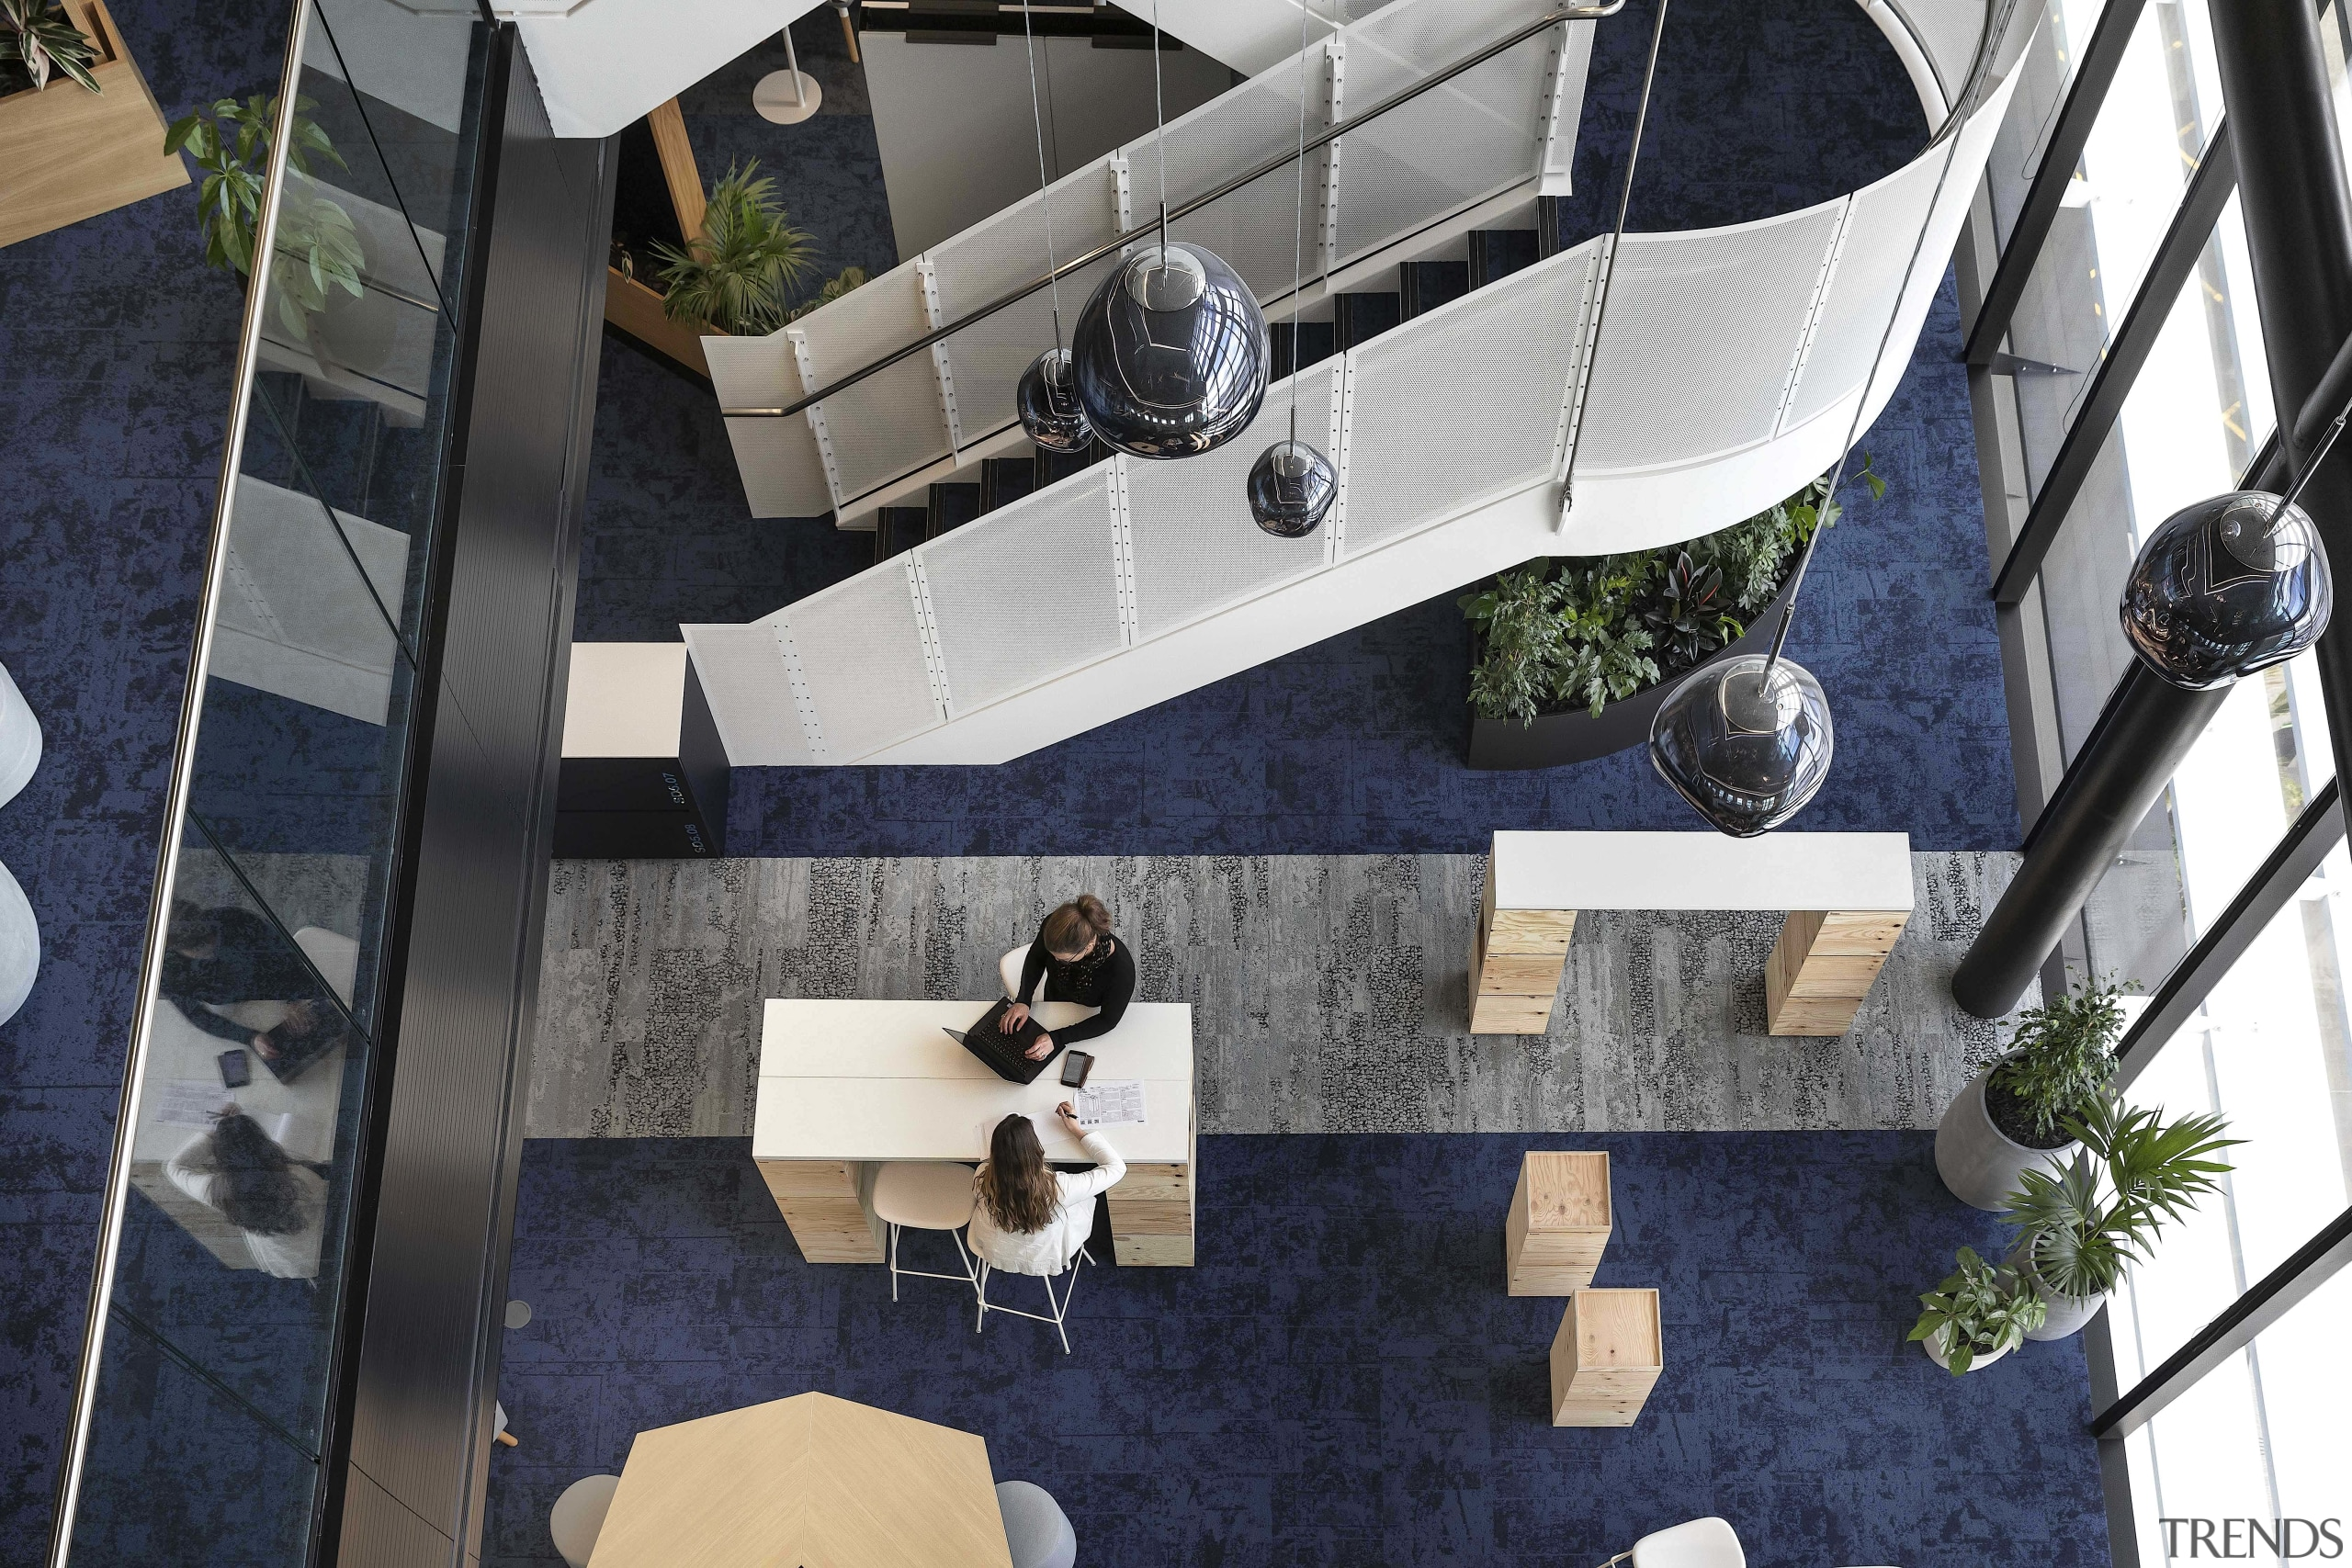 The base building stair and ANZ flexible work